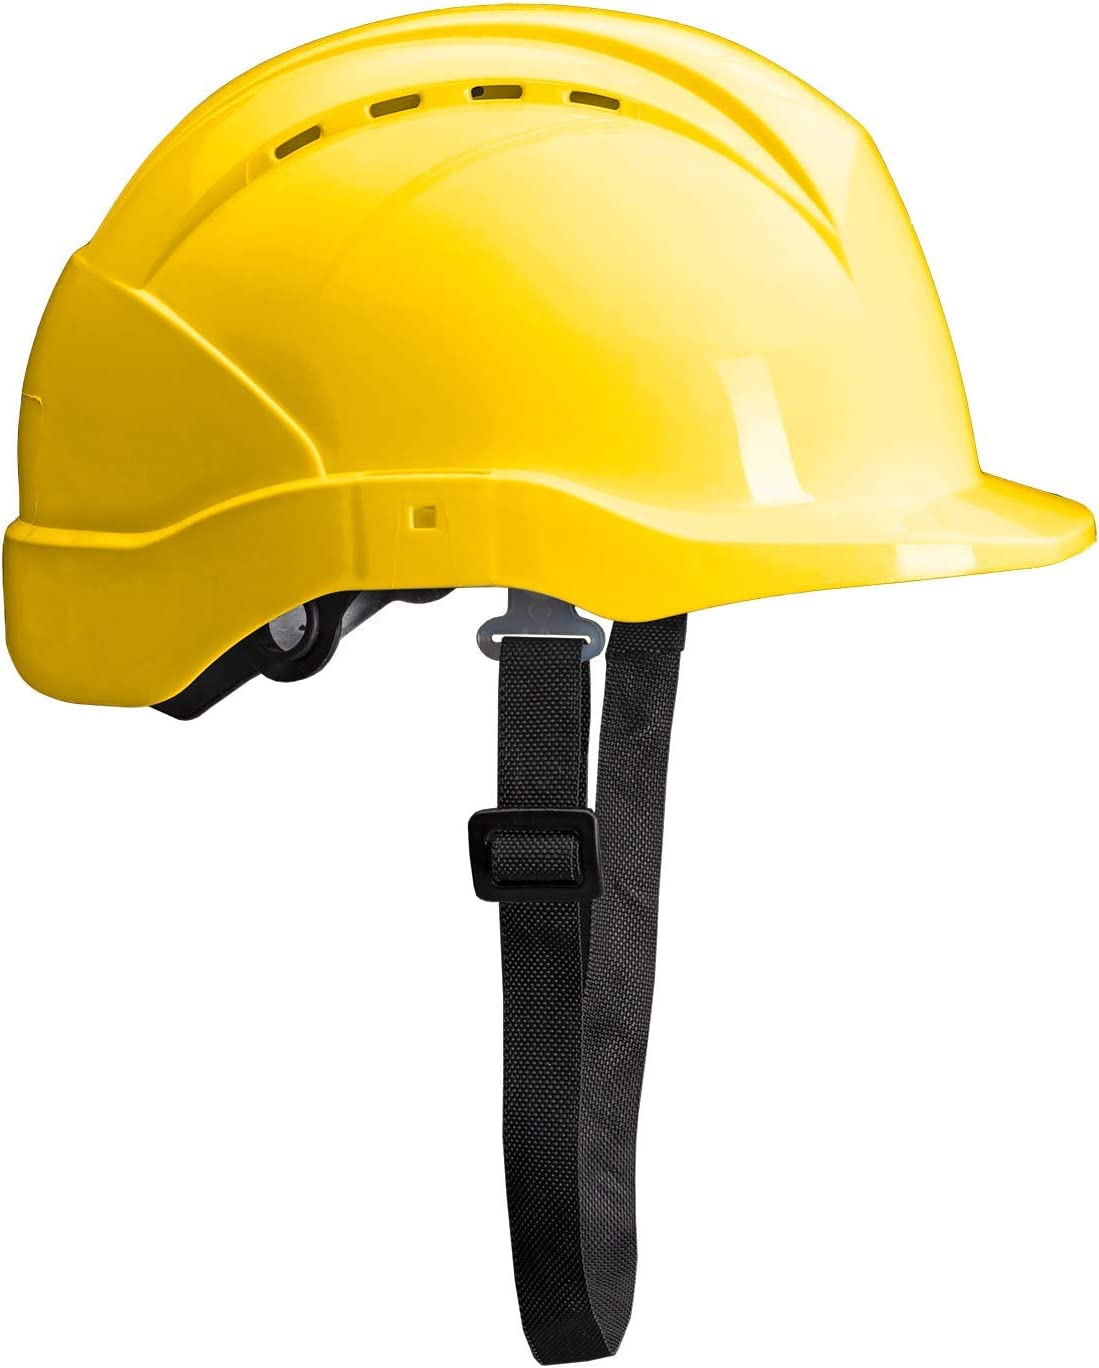 ACE Patera Safety Helmet Work Head Protection Hard Hat with Twist Lock Ventilated and Adjustable Yellow